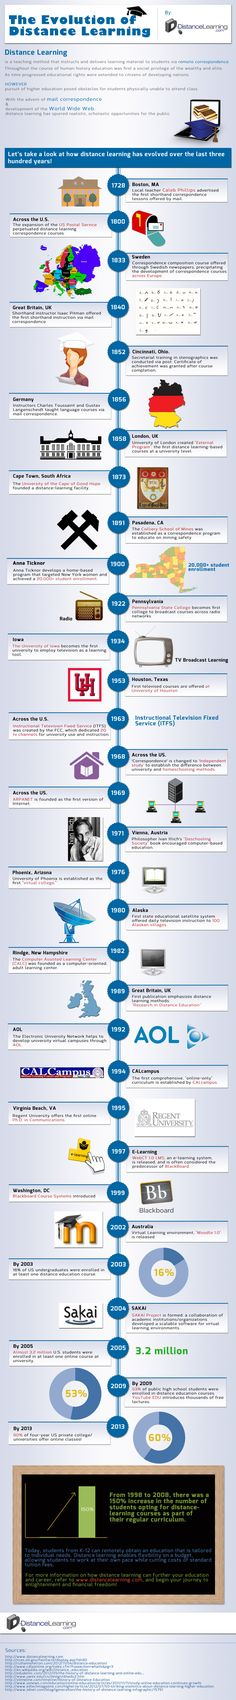 The Evolution of Distance Learning #eLearning